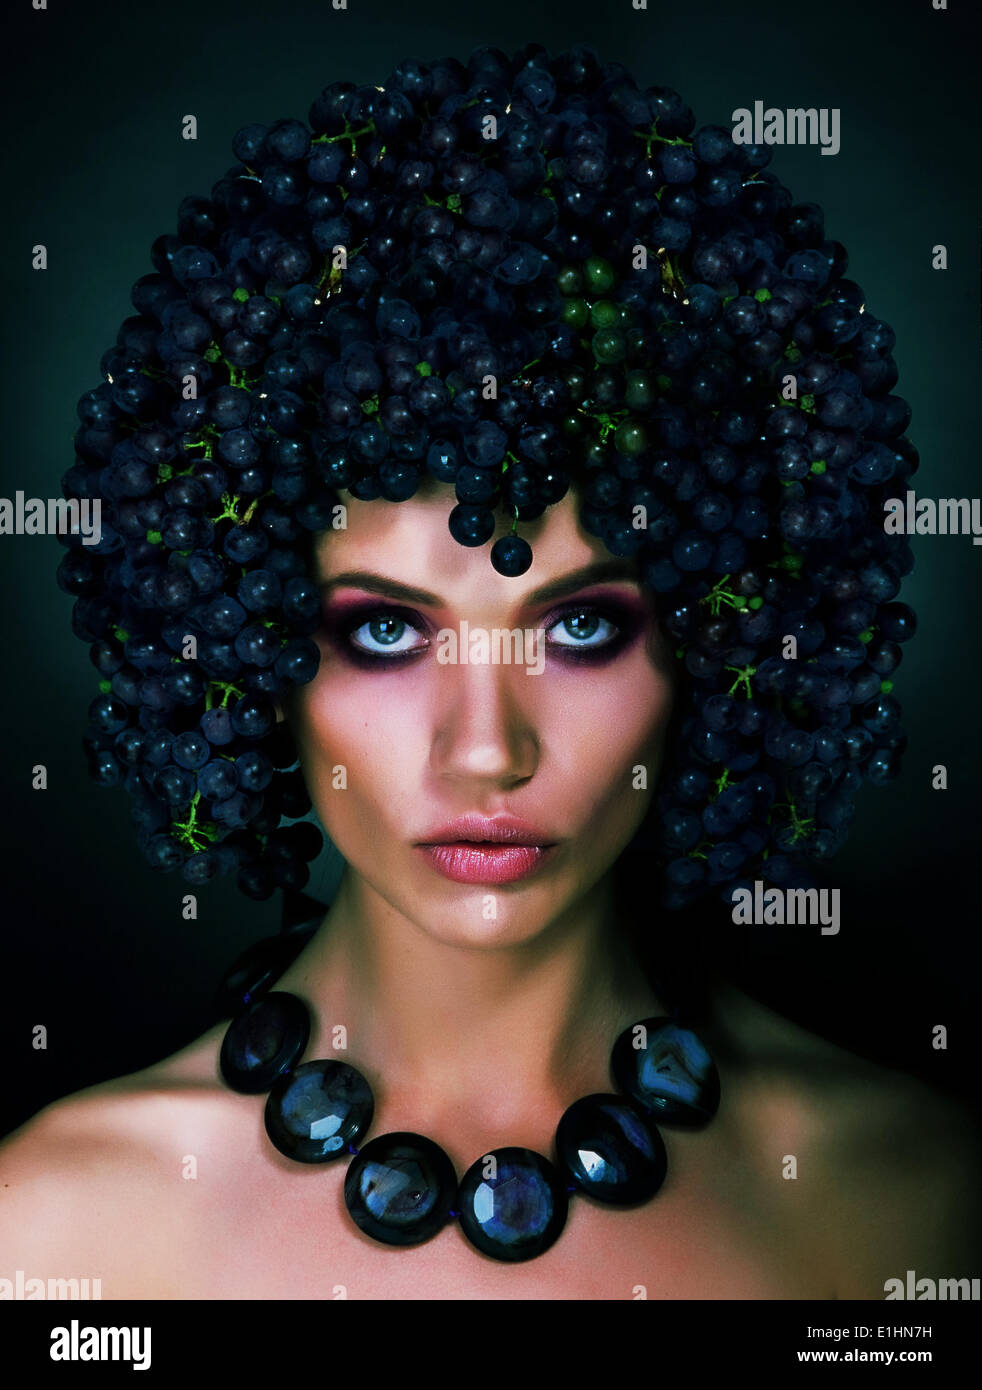 Portrait of Autumn Woman with Grapes on her Head. Trendy Hairstyle - Stock Image